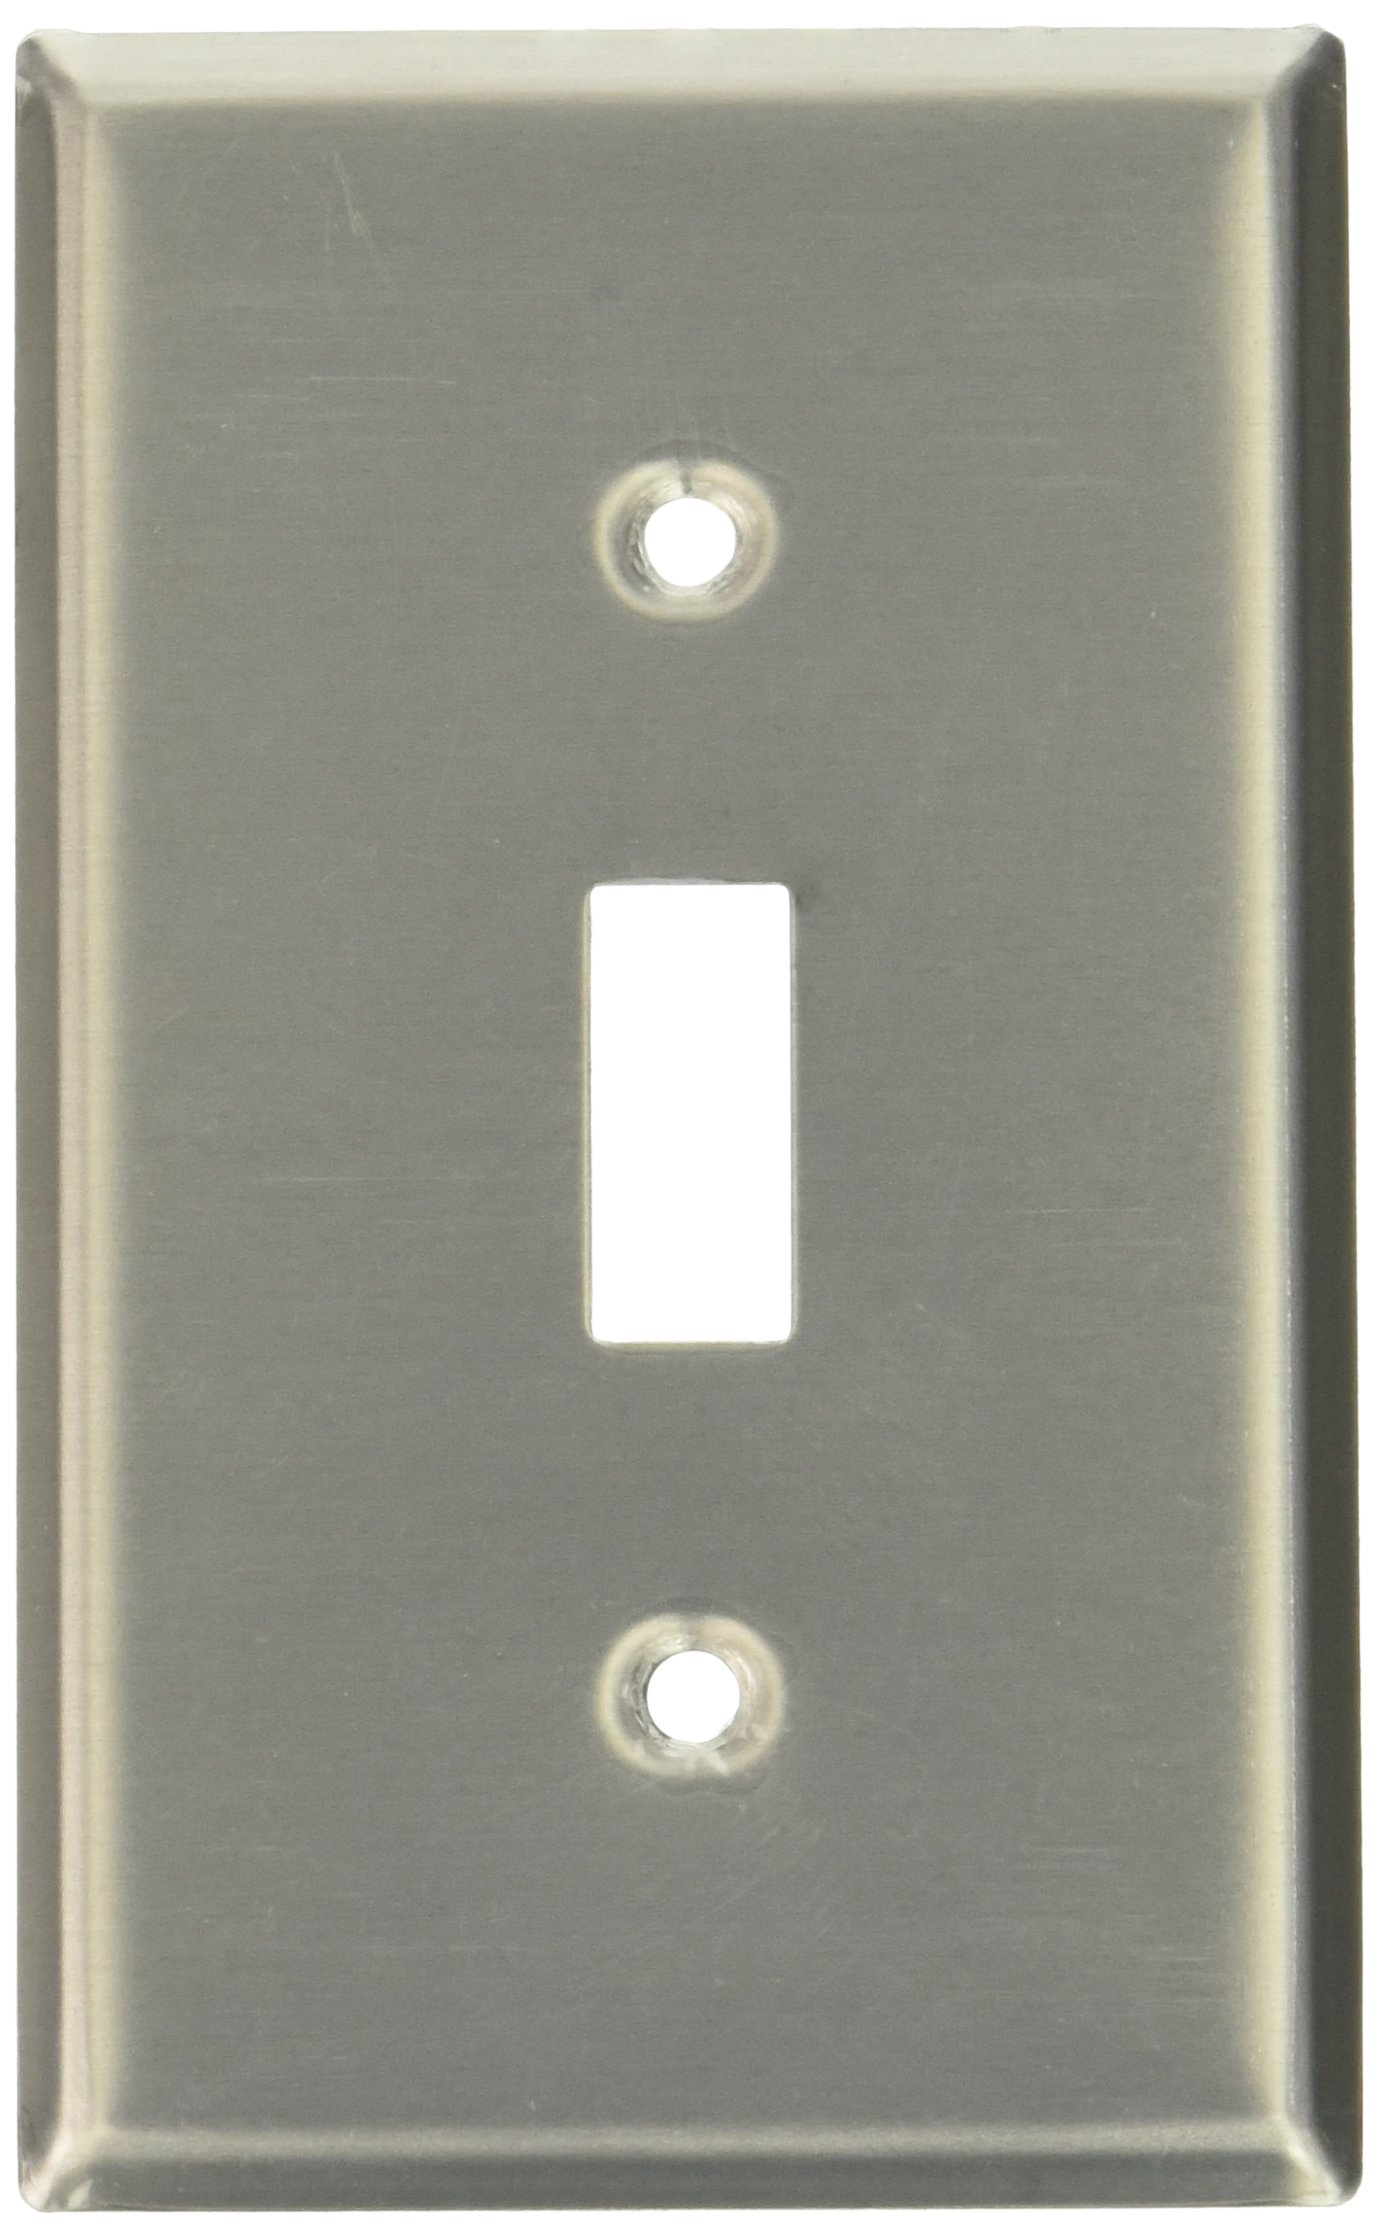 Leviton 83001 1-Gang Toggle Device Switch Wallplate, Standard Size, Device Mount, Aluminum, 20-Pack